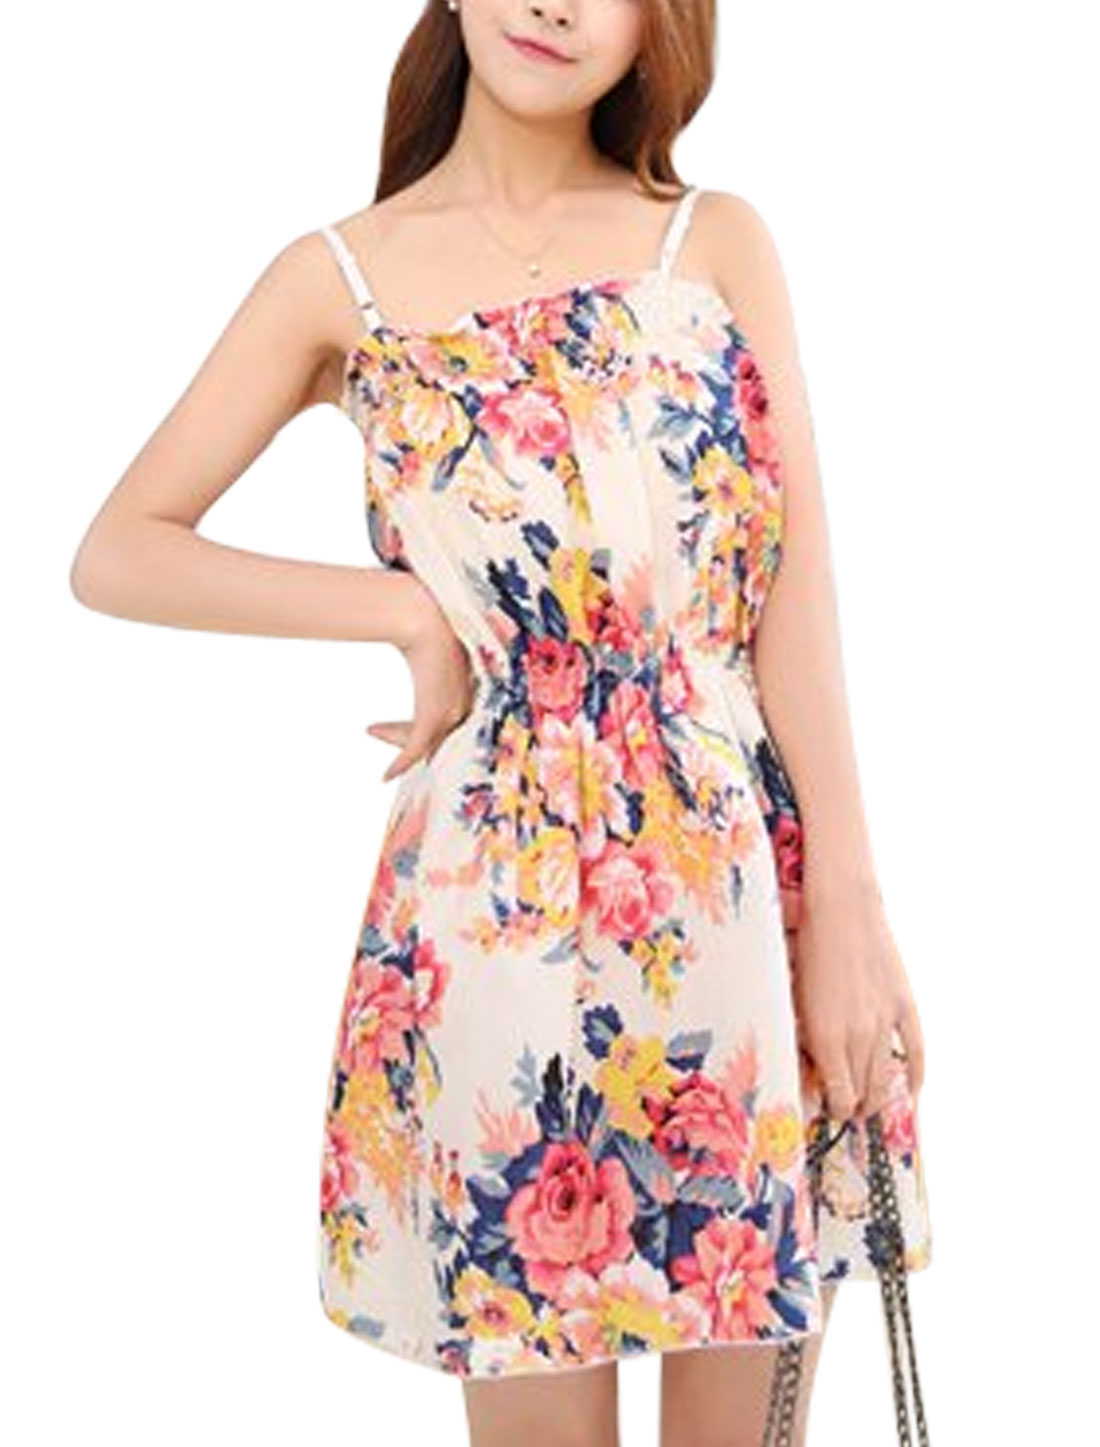 Ladies Flower Prints Square Neckline Sleeveless Tunic Dress Beige XS